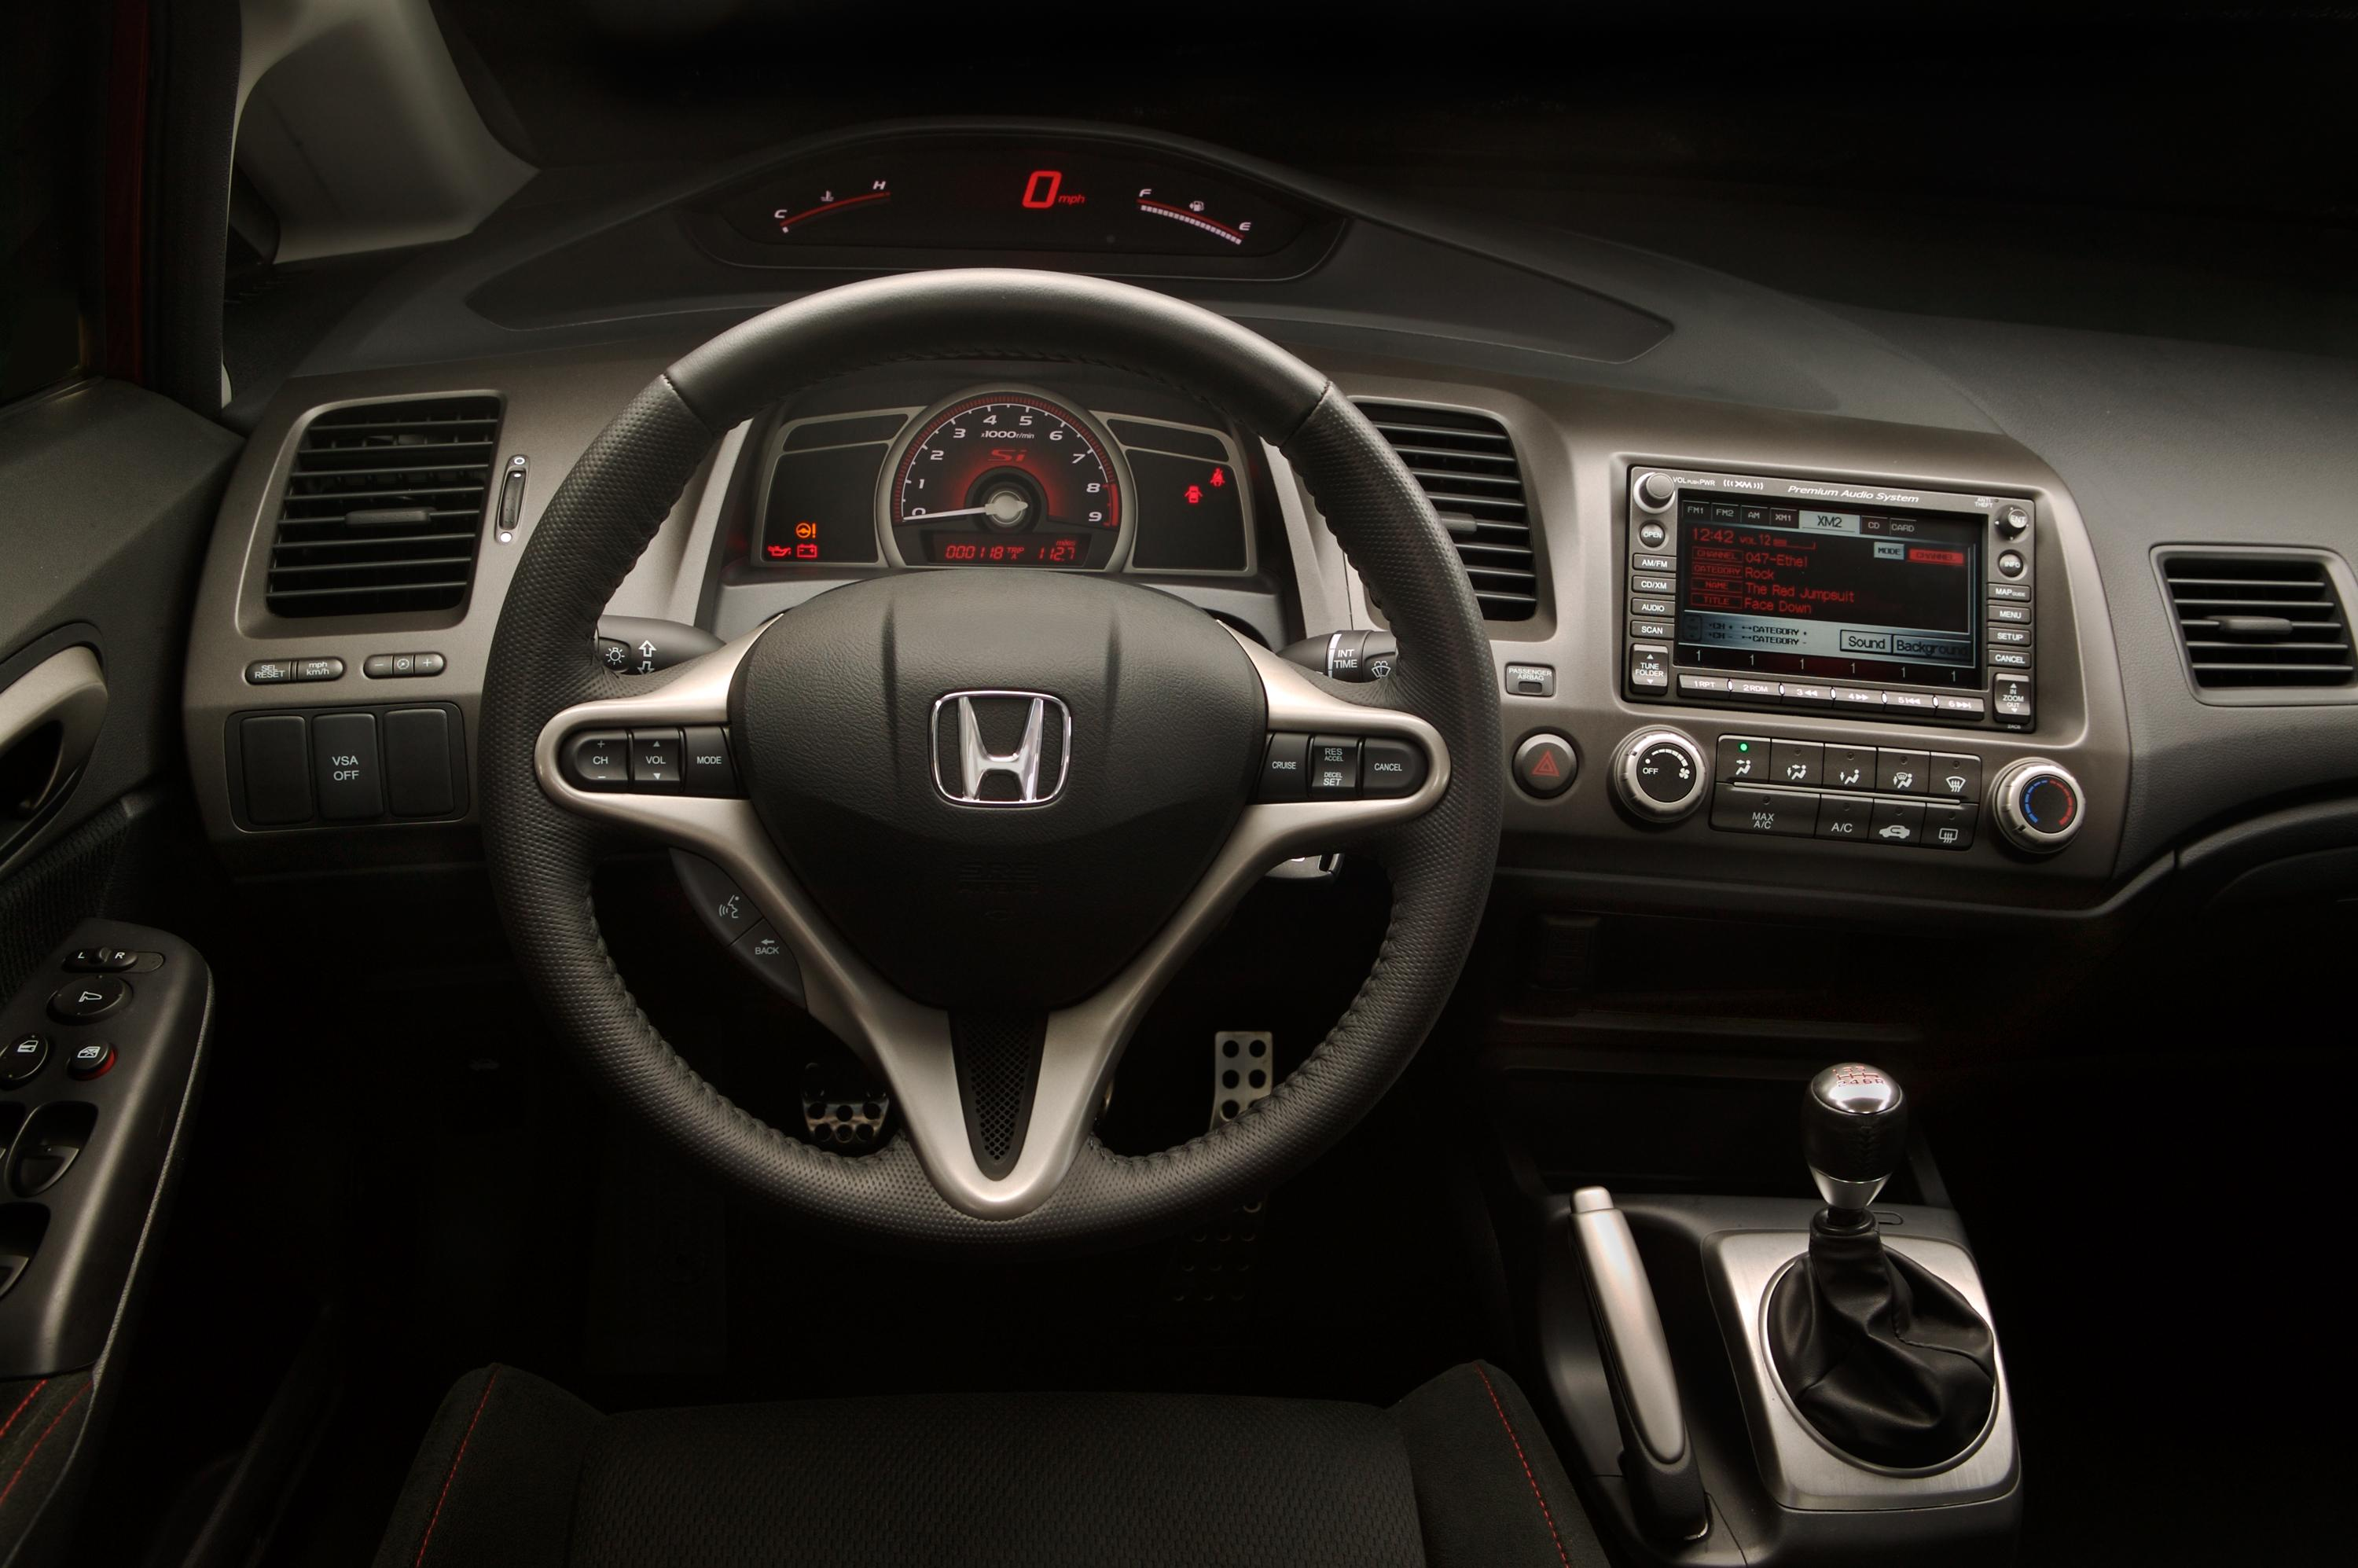 Honda Civic Si Sedan 2008 Picture 5372